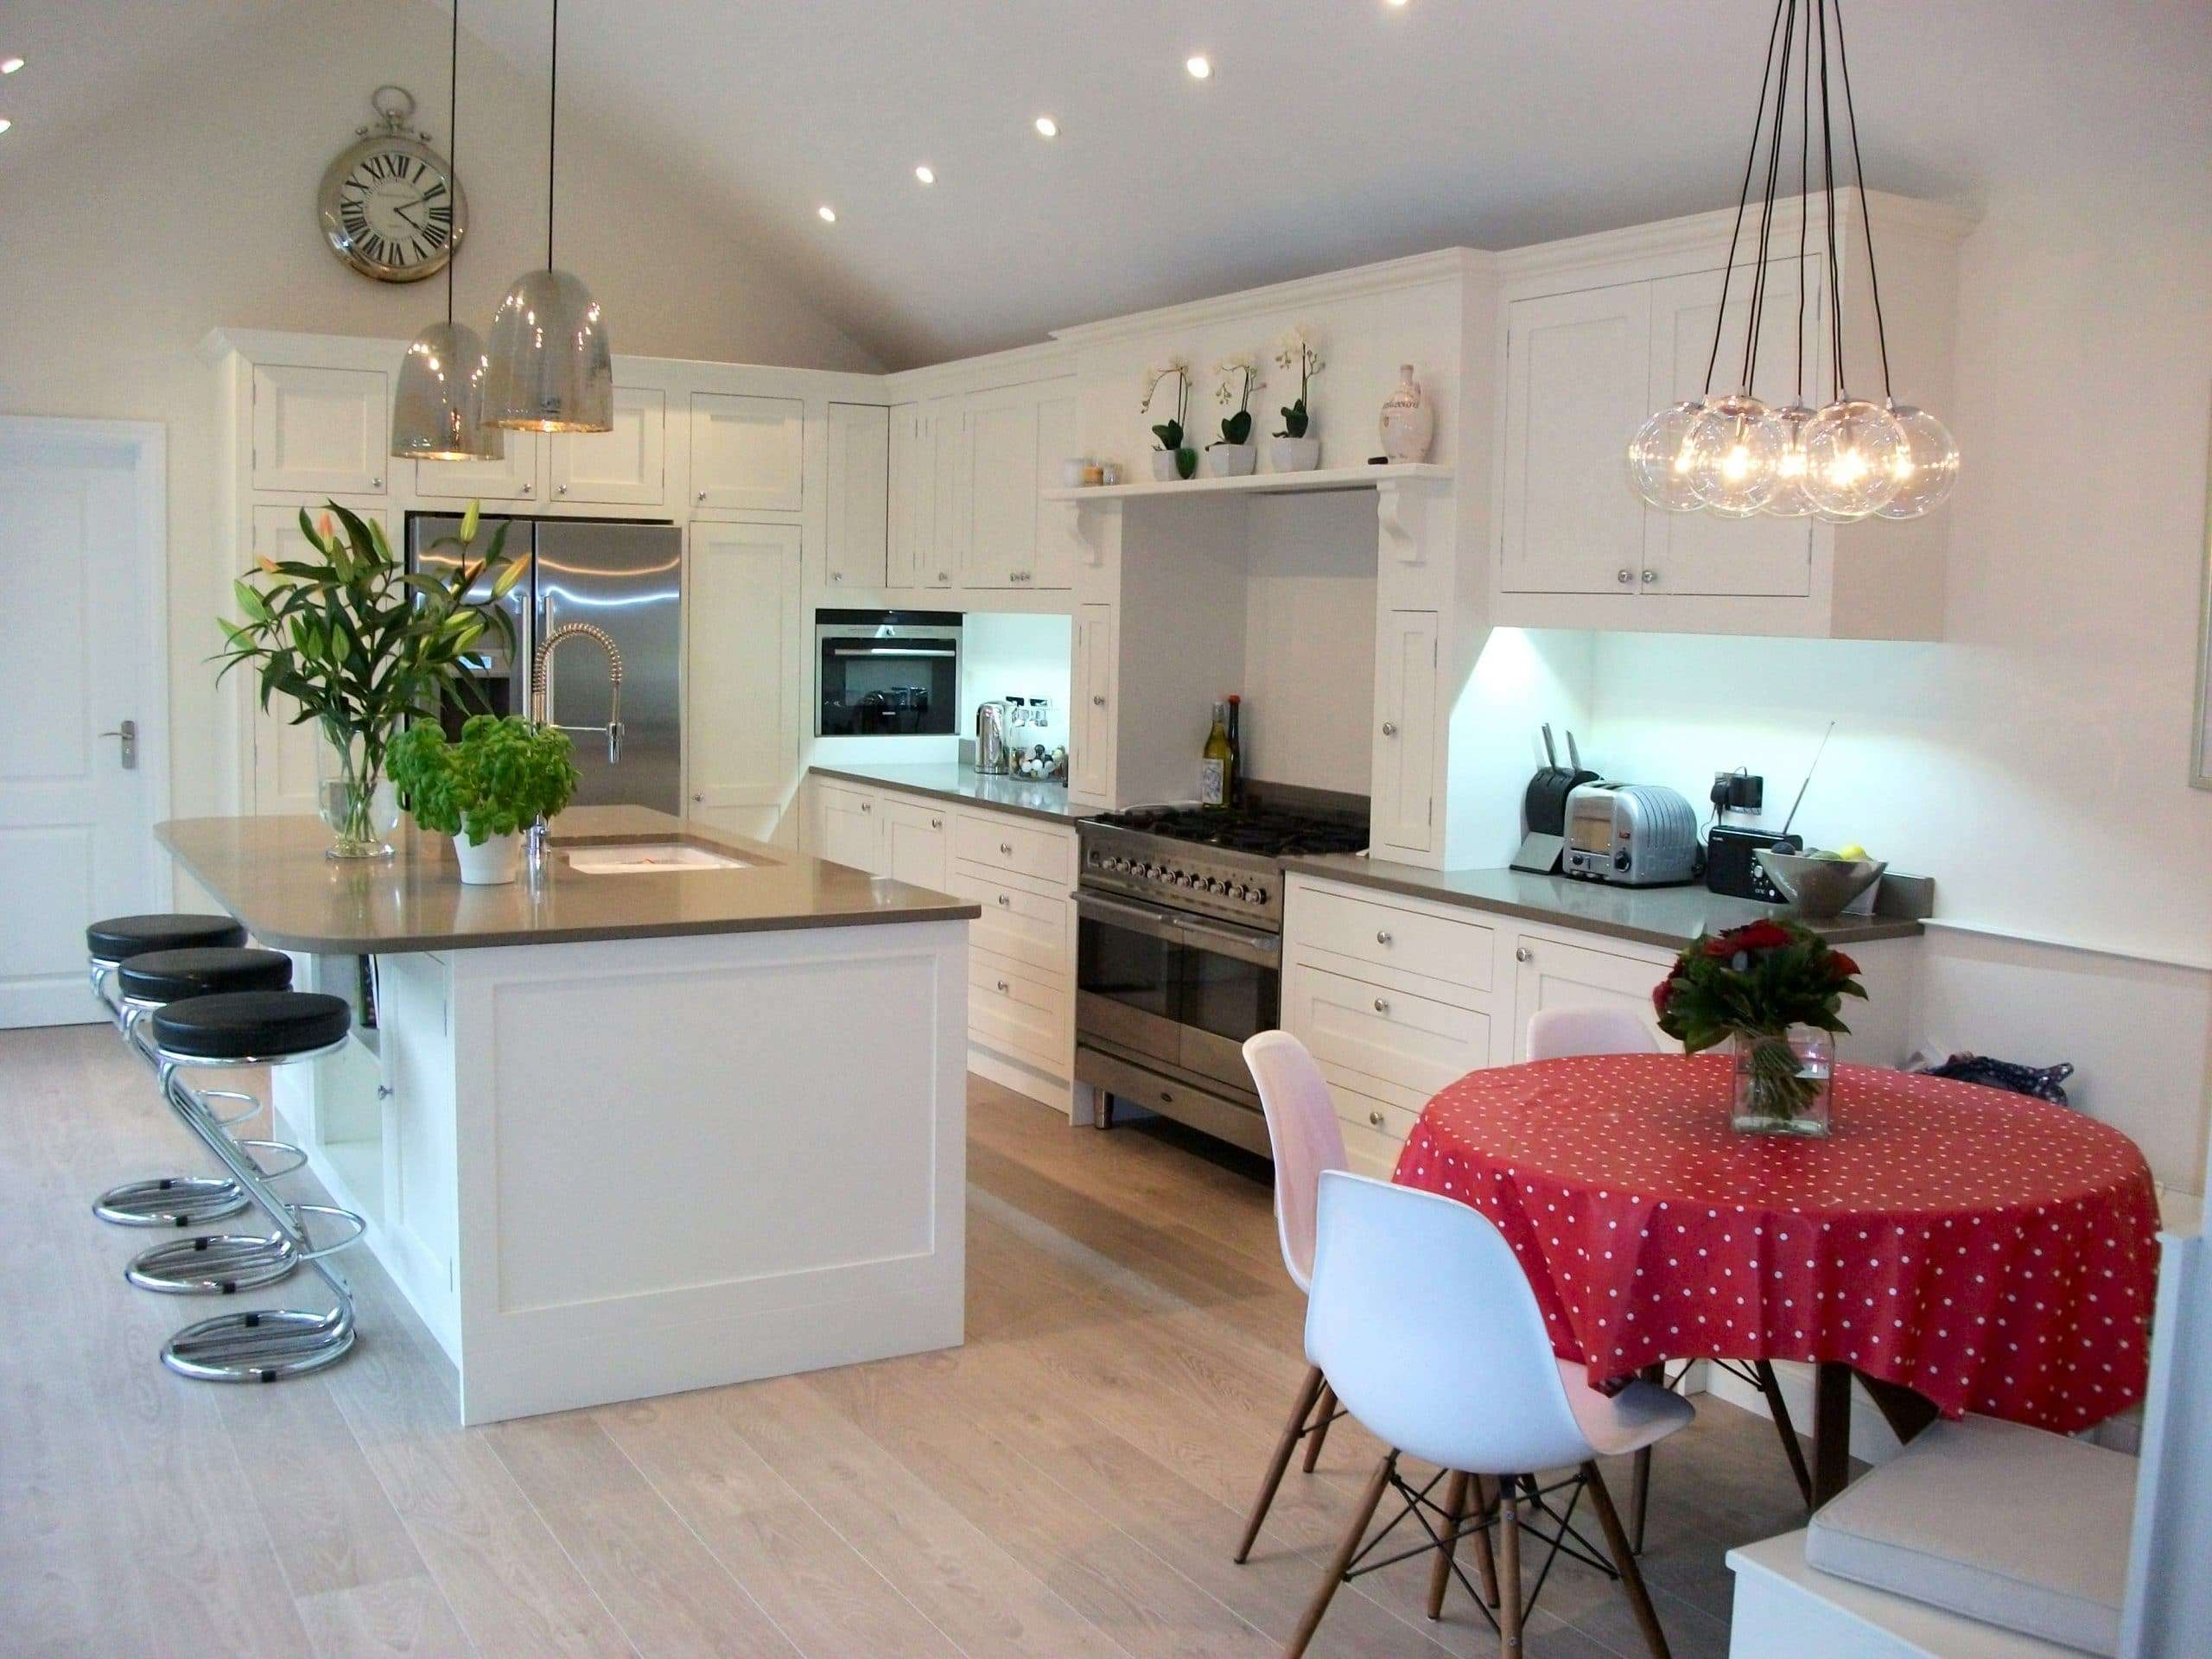 Sussex designer kitchens - Sussex Kitchens